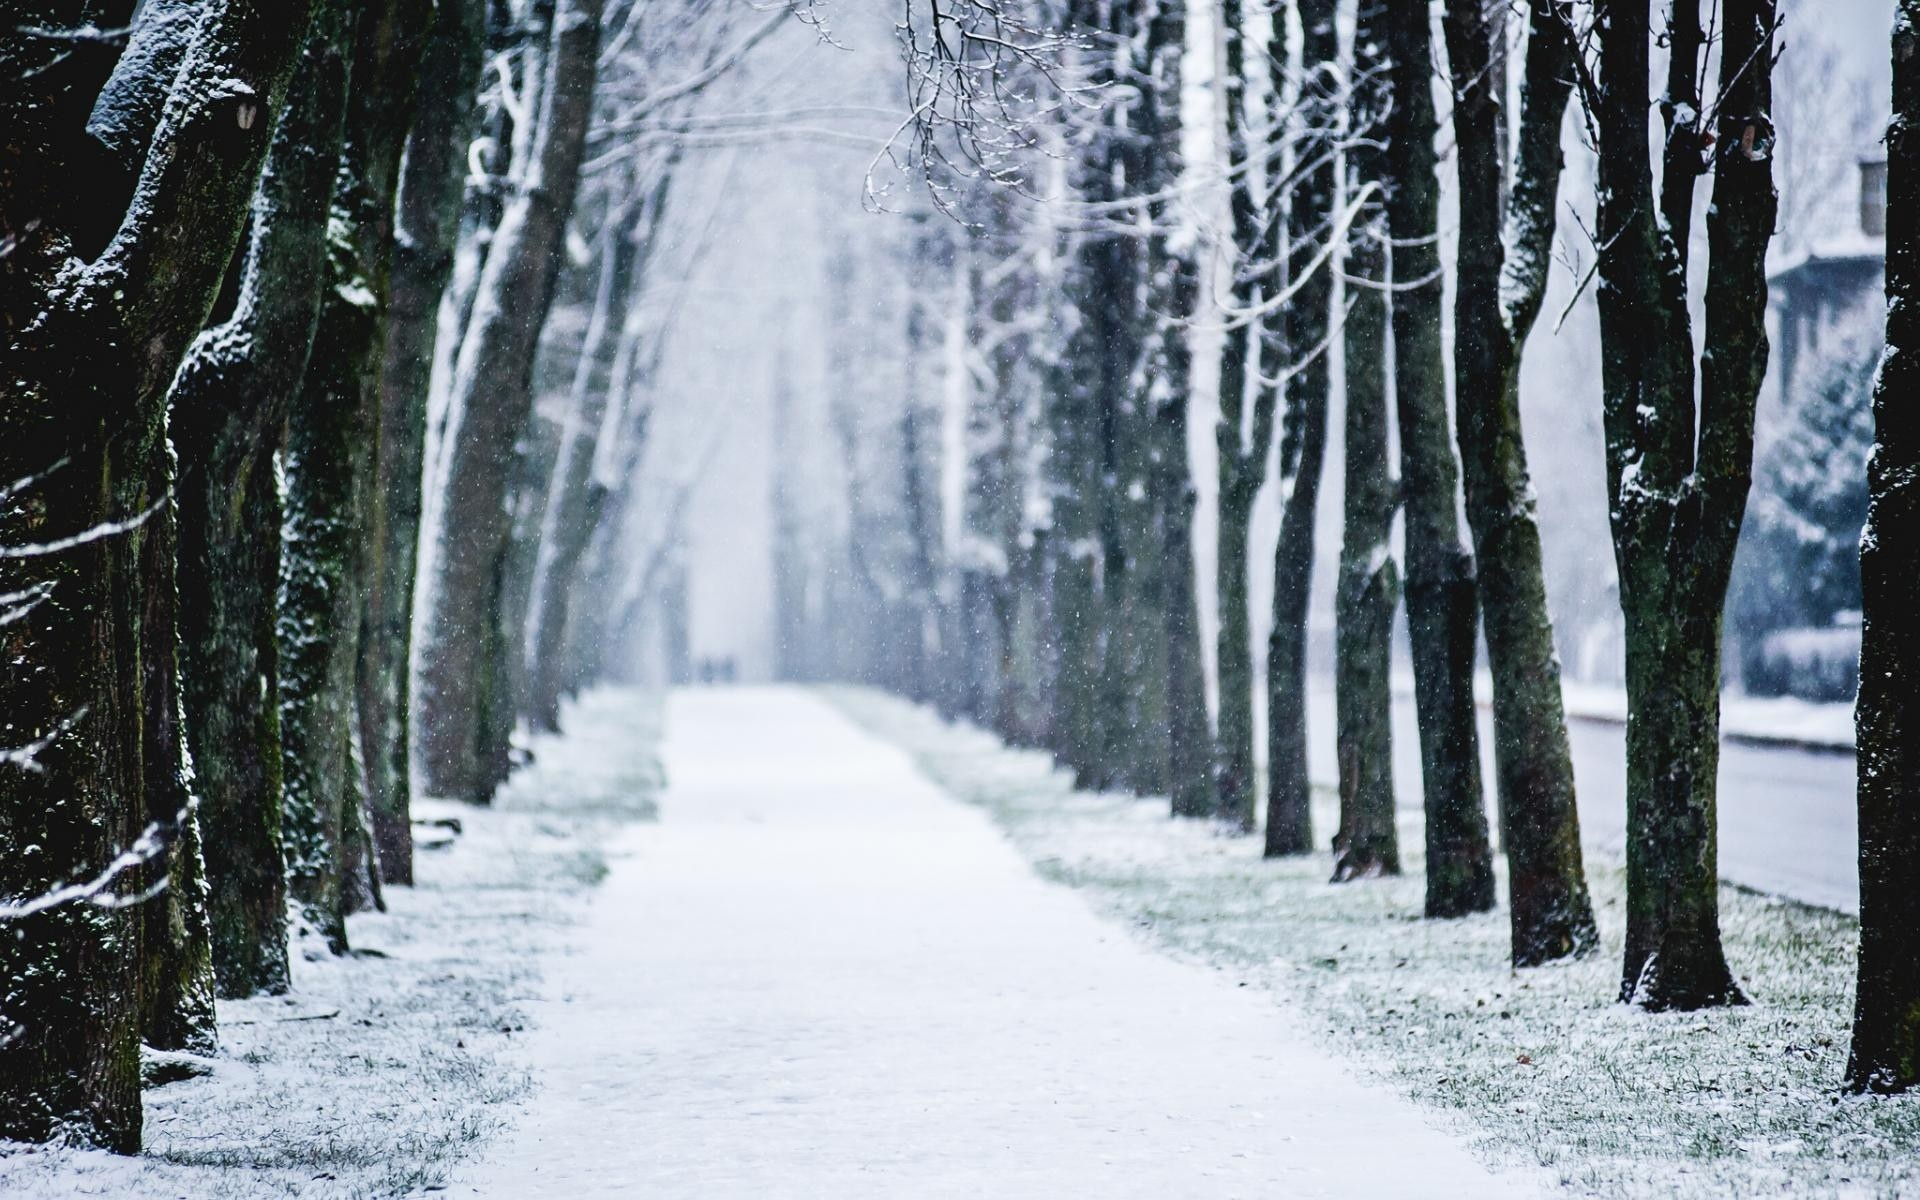 nature landscape roads path sidewalk trail tracks trees lane winter snow seasons snowing flakes drops cold